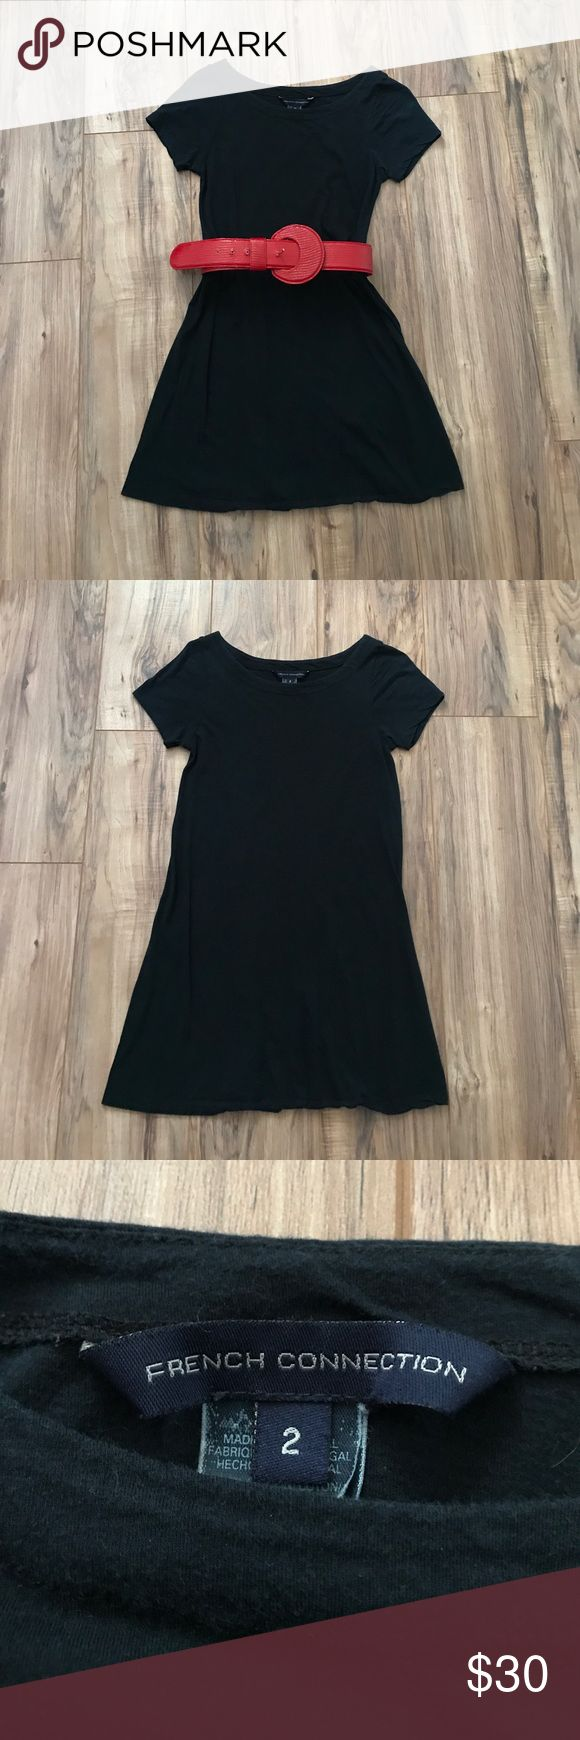 French Connection Little Black Dress Little black dress from French Connection. Size 2. Looks great with a bold belt or colorful necklace to add a pop of color. French Connection Dresses